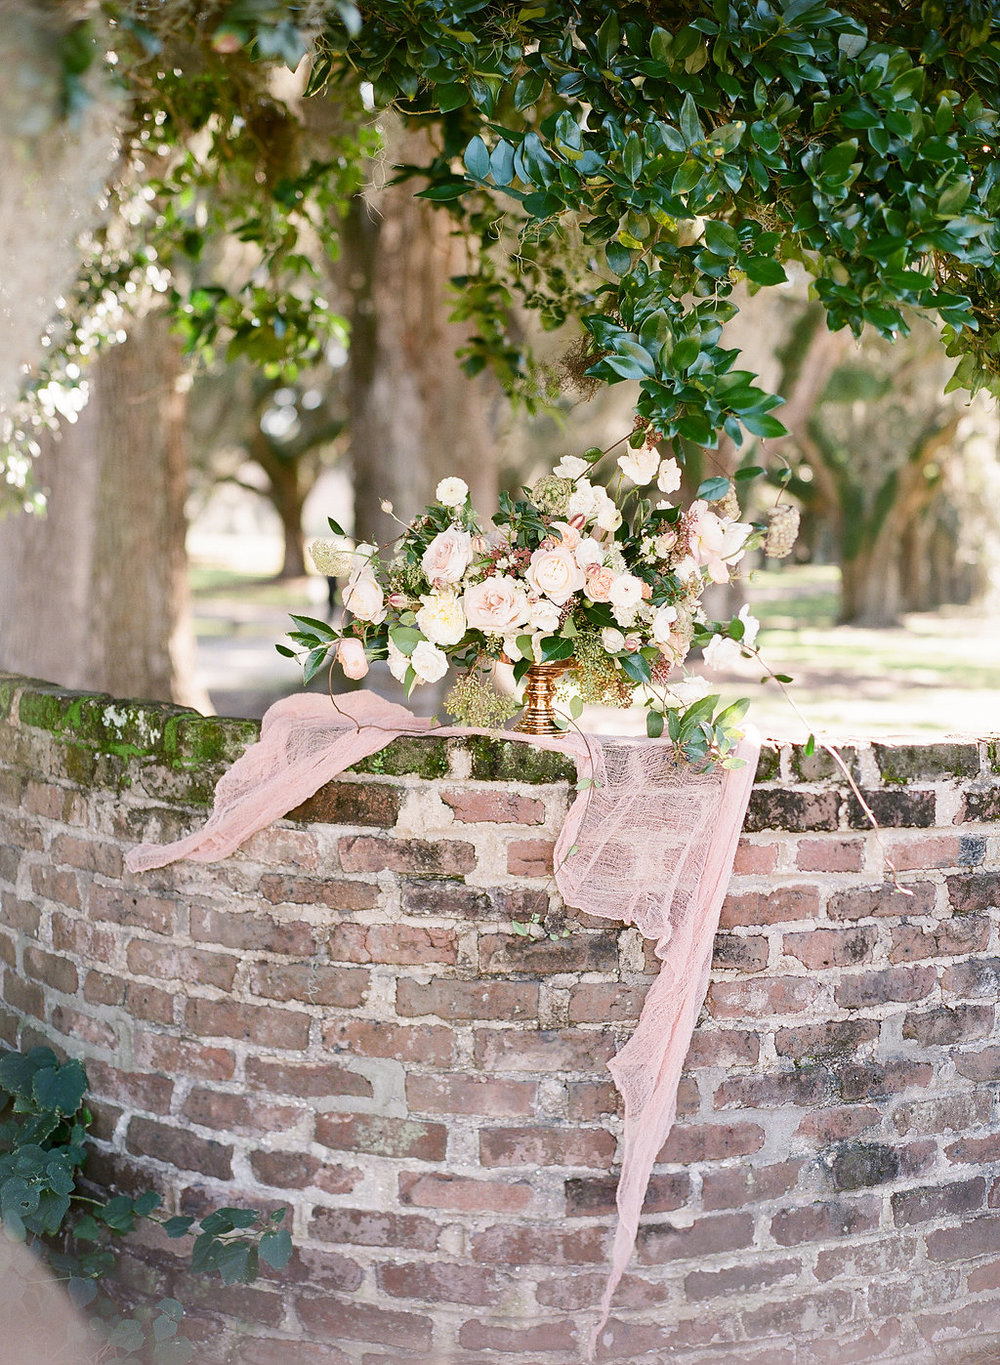 the-happy-bloom-ivory-and-beau-bridal-boutique-trendy-bride-magazine-august-floral-design-savannah-bridal-boutique-lafayette-sarah-seven-boone-hall-plantation-wedding-southern-wedding-charleston-wedding-mt-pleasent-wedding-21.jpg